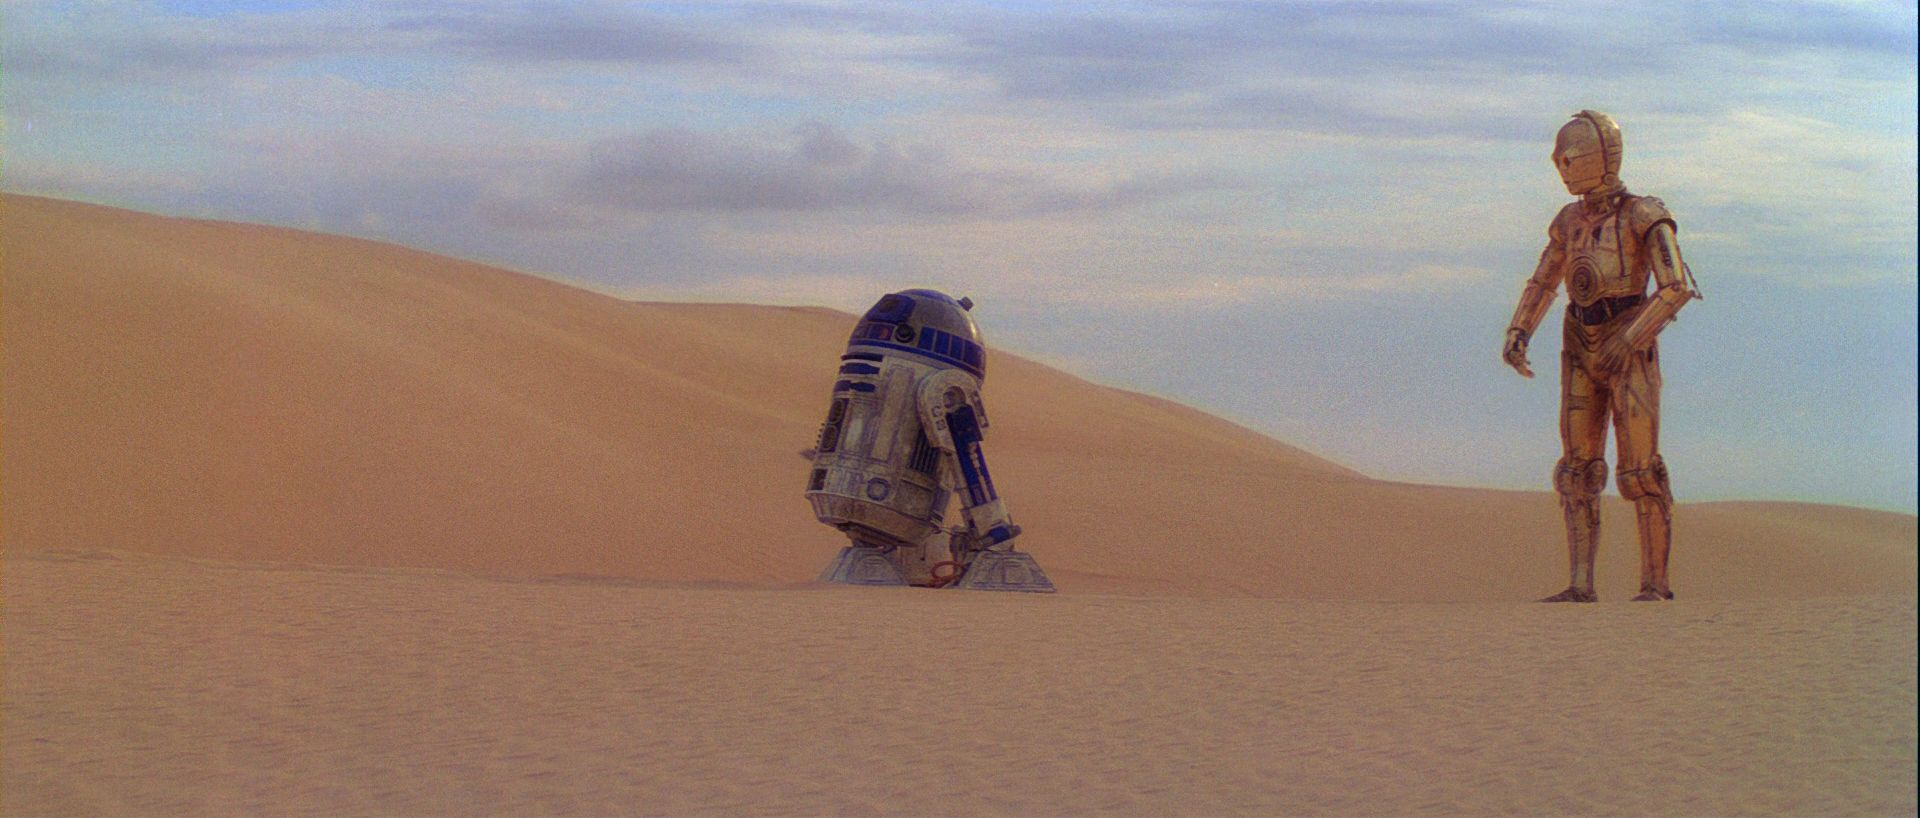 Image result for image, photo, picture, star wars, new hope, desert, robot auction